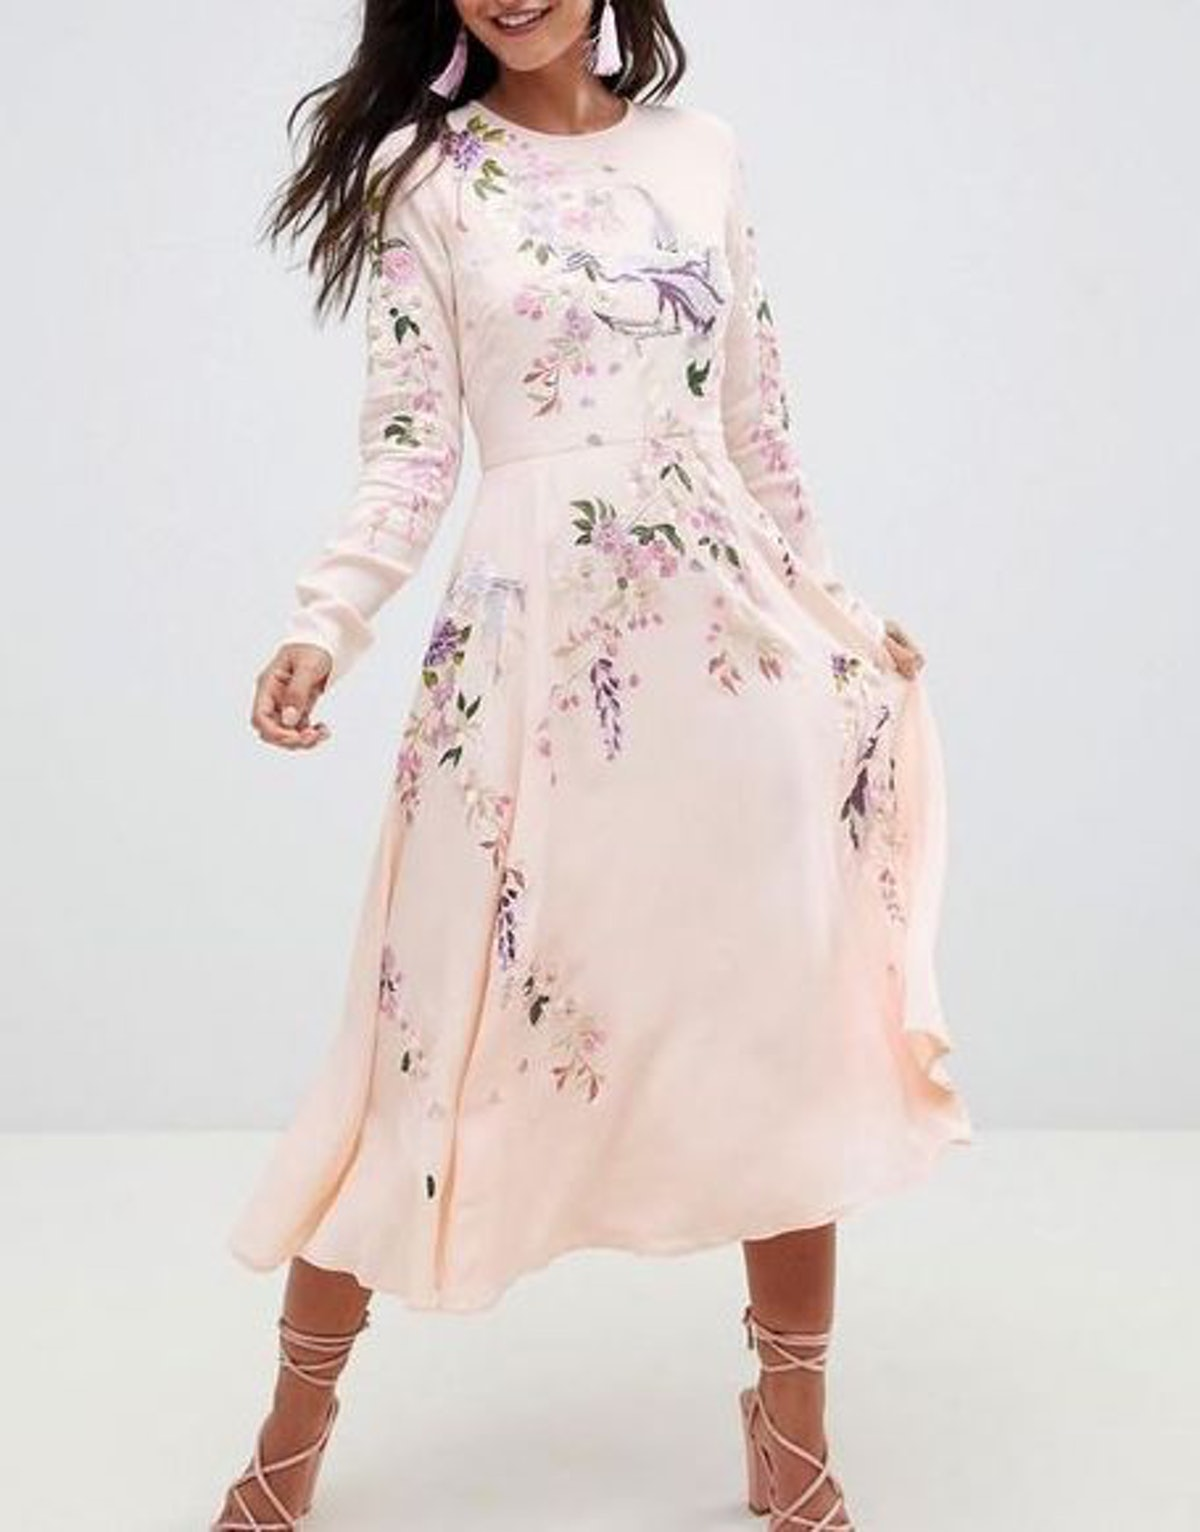 Midi Dress With Pretty Floral And Bird Embroidery